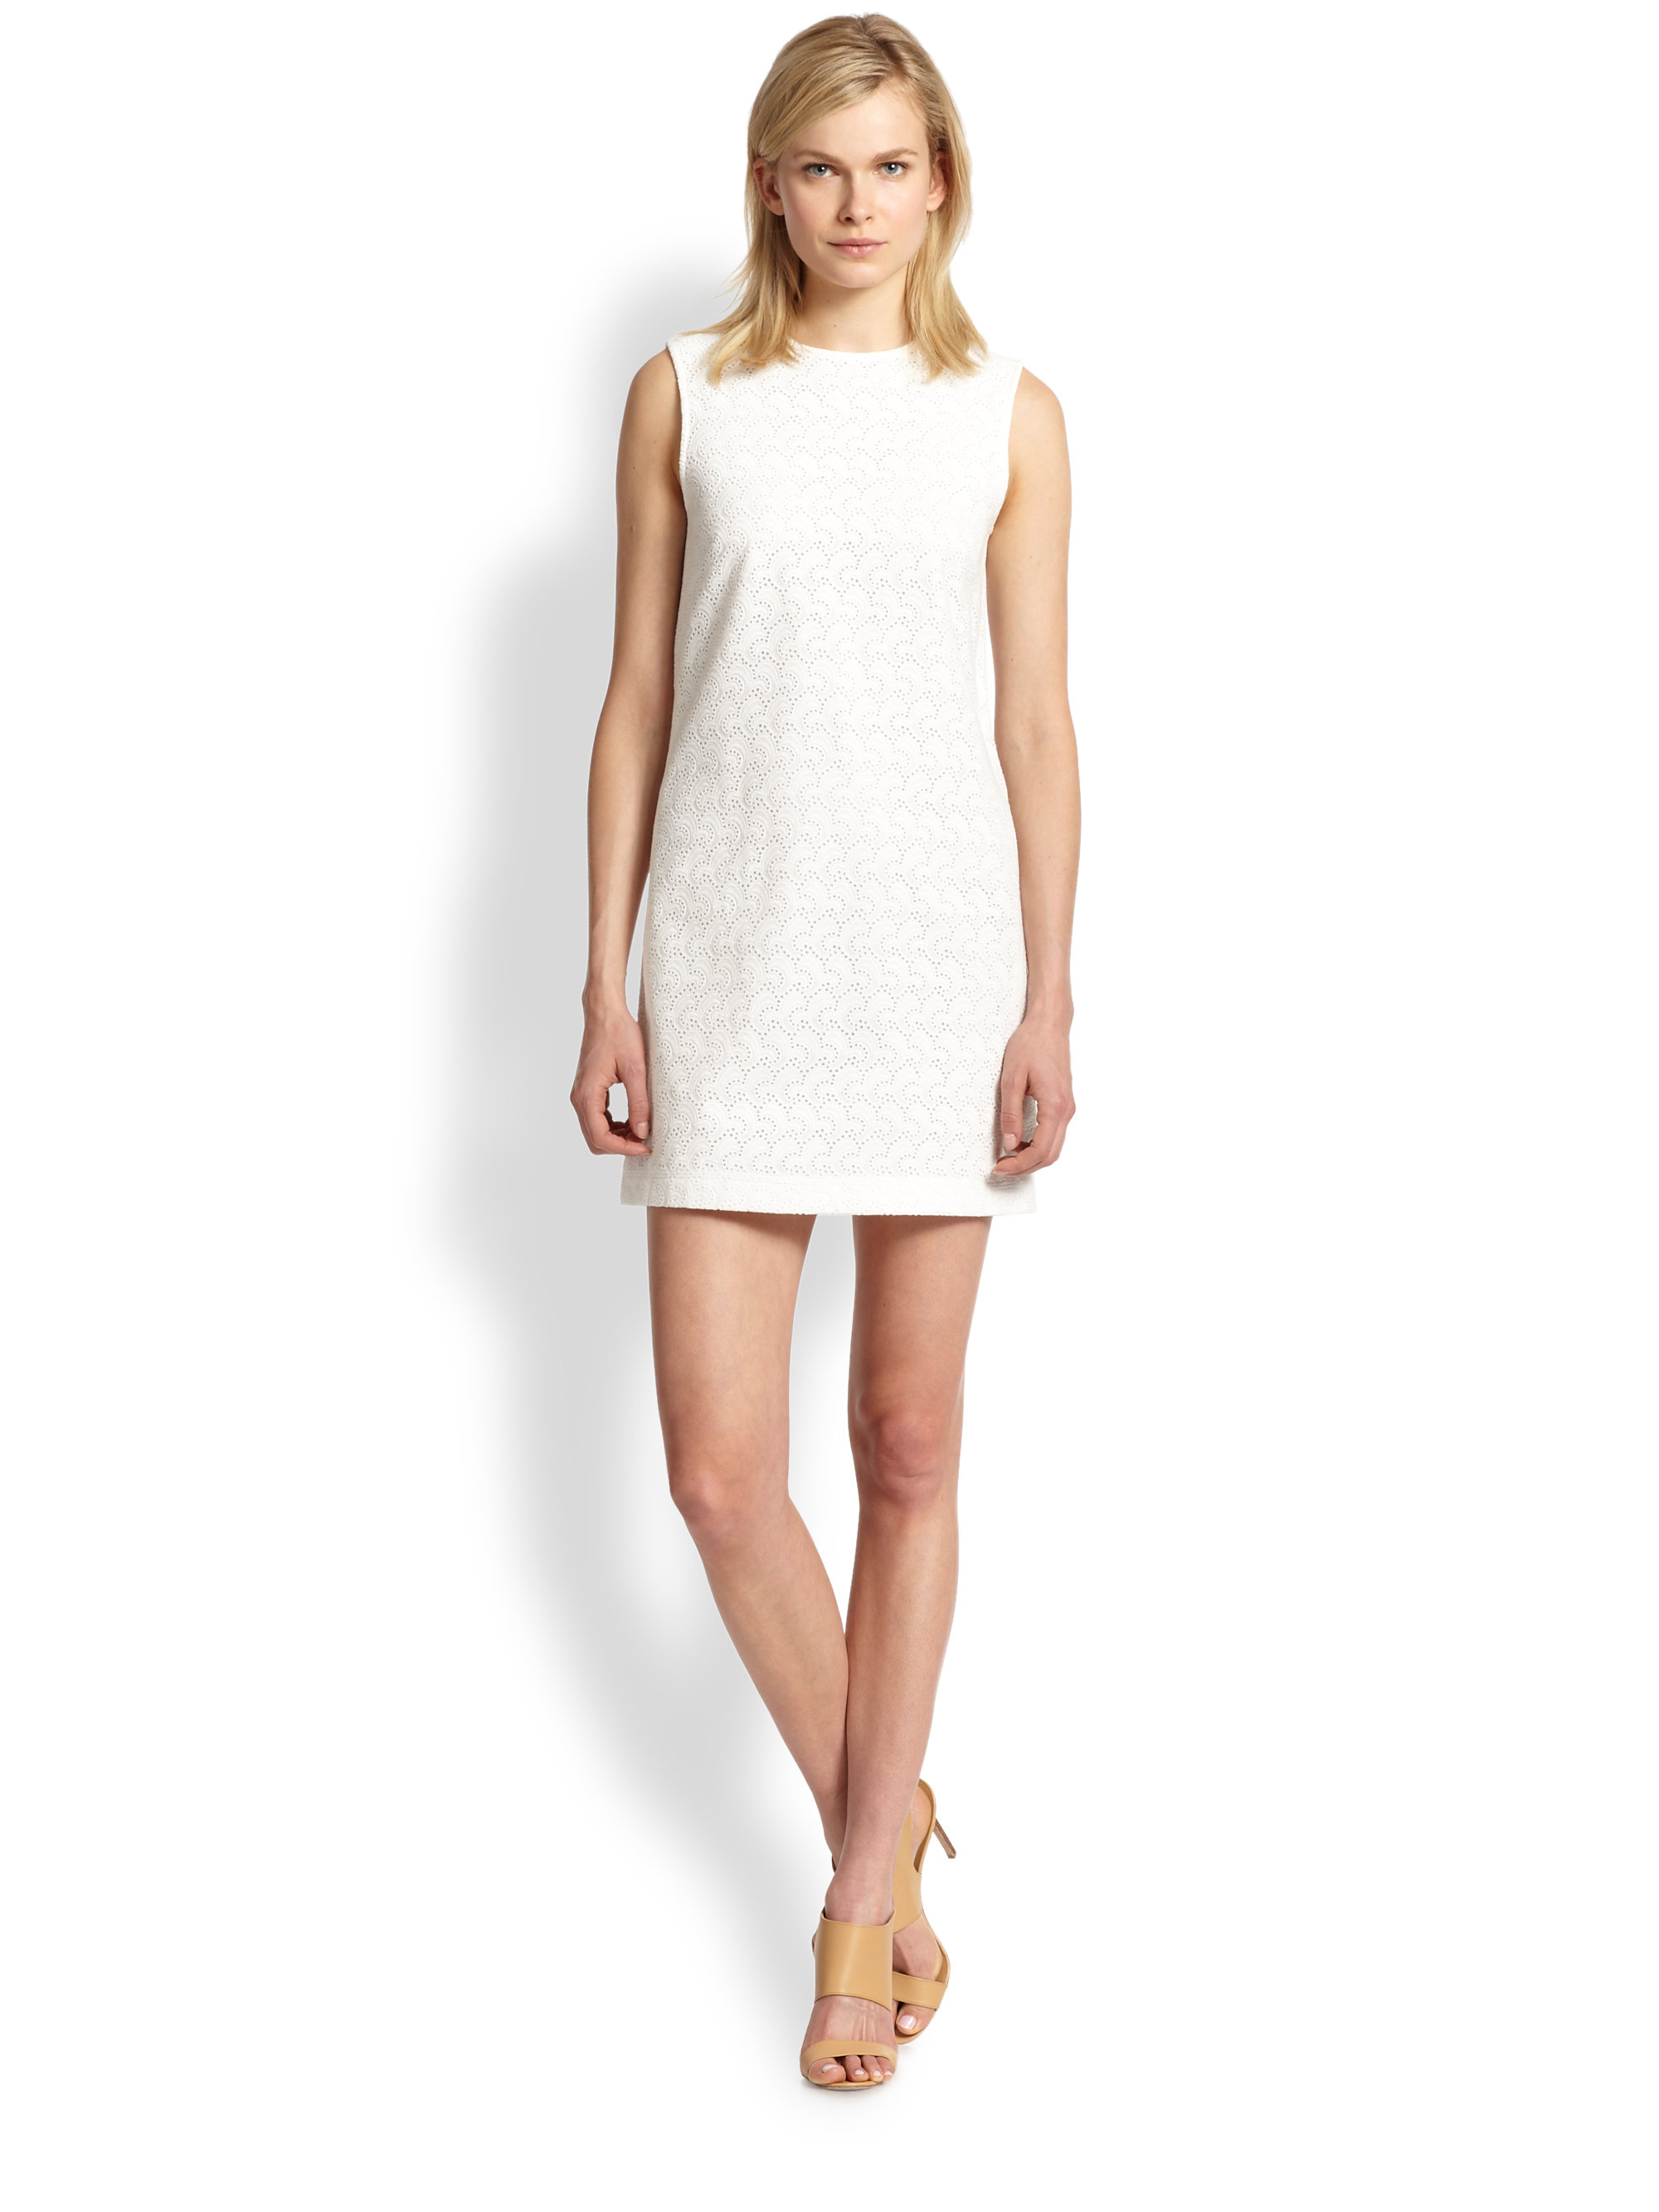 White eyelet dress - results from brands Calvin Klein, Ralph Lauren, Bonnie Jean, products like SL Fashions Soutache Eyelet Sheath Dress - White 14,